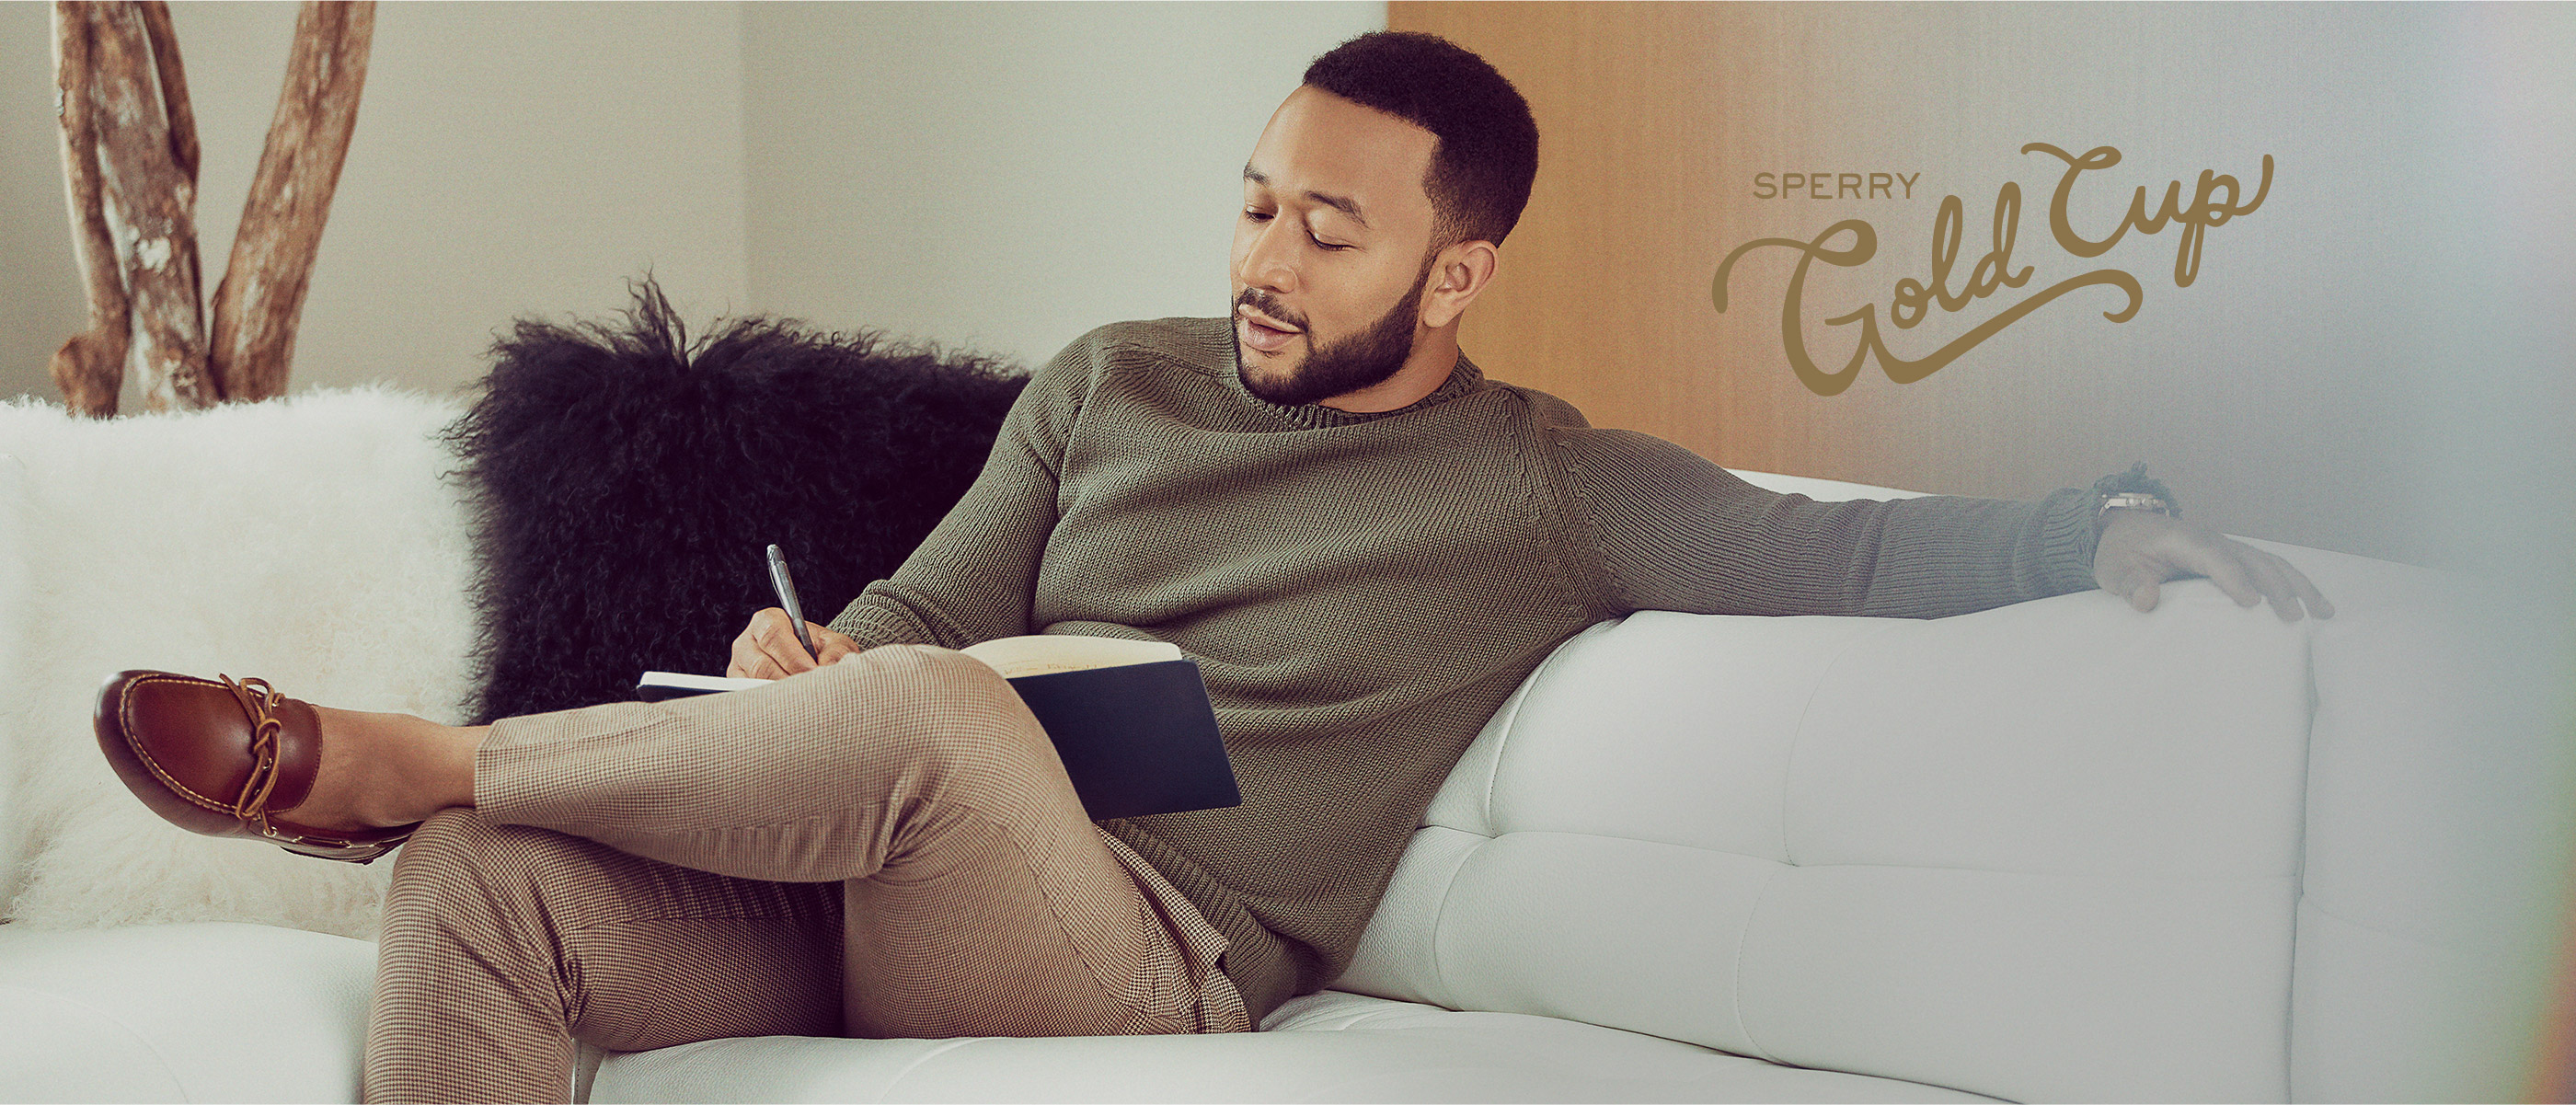 John Legend sitting on a white couch with his legs crossed writing in a book on his lap.